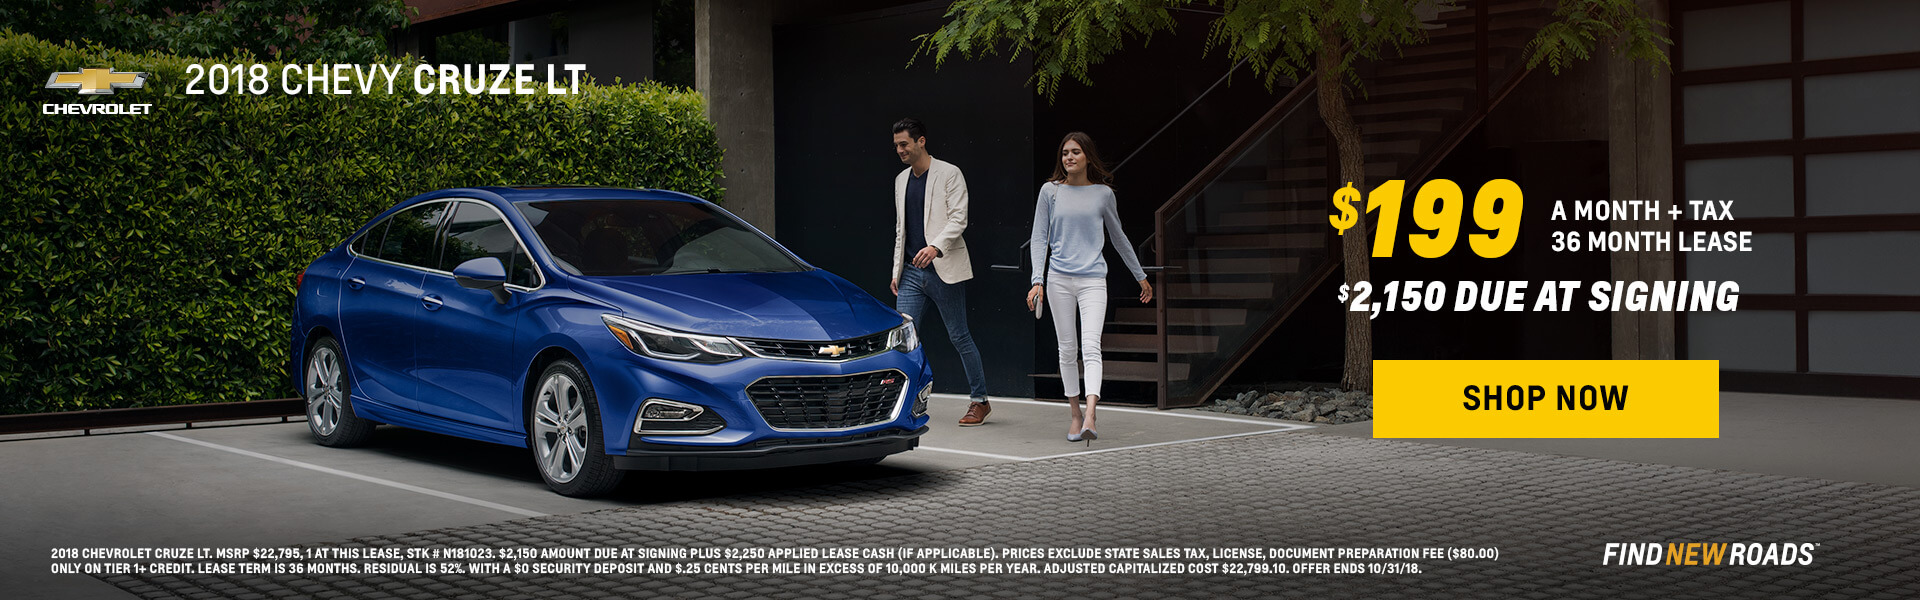 Cruze Lease Special